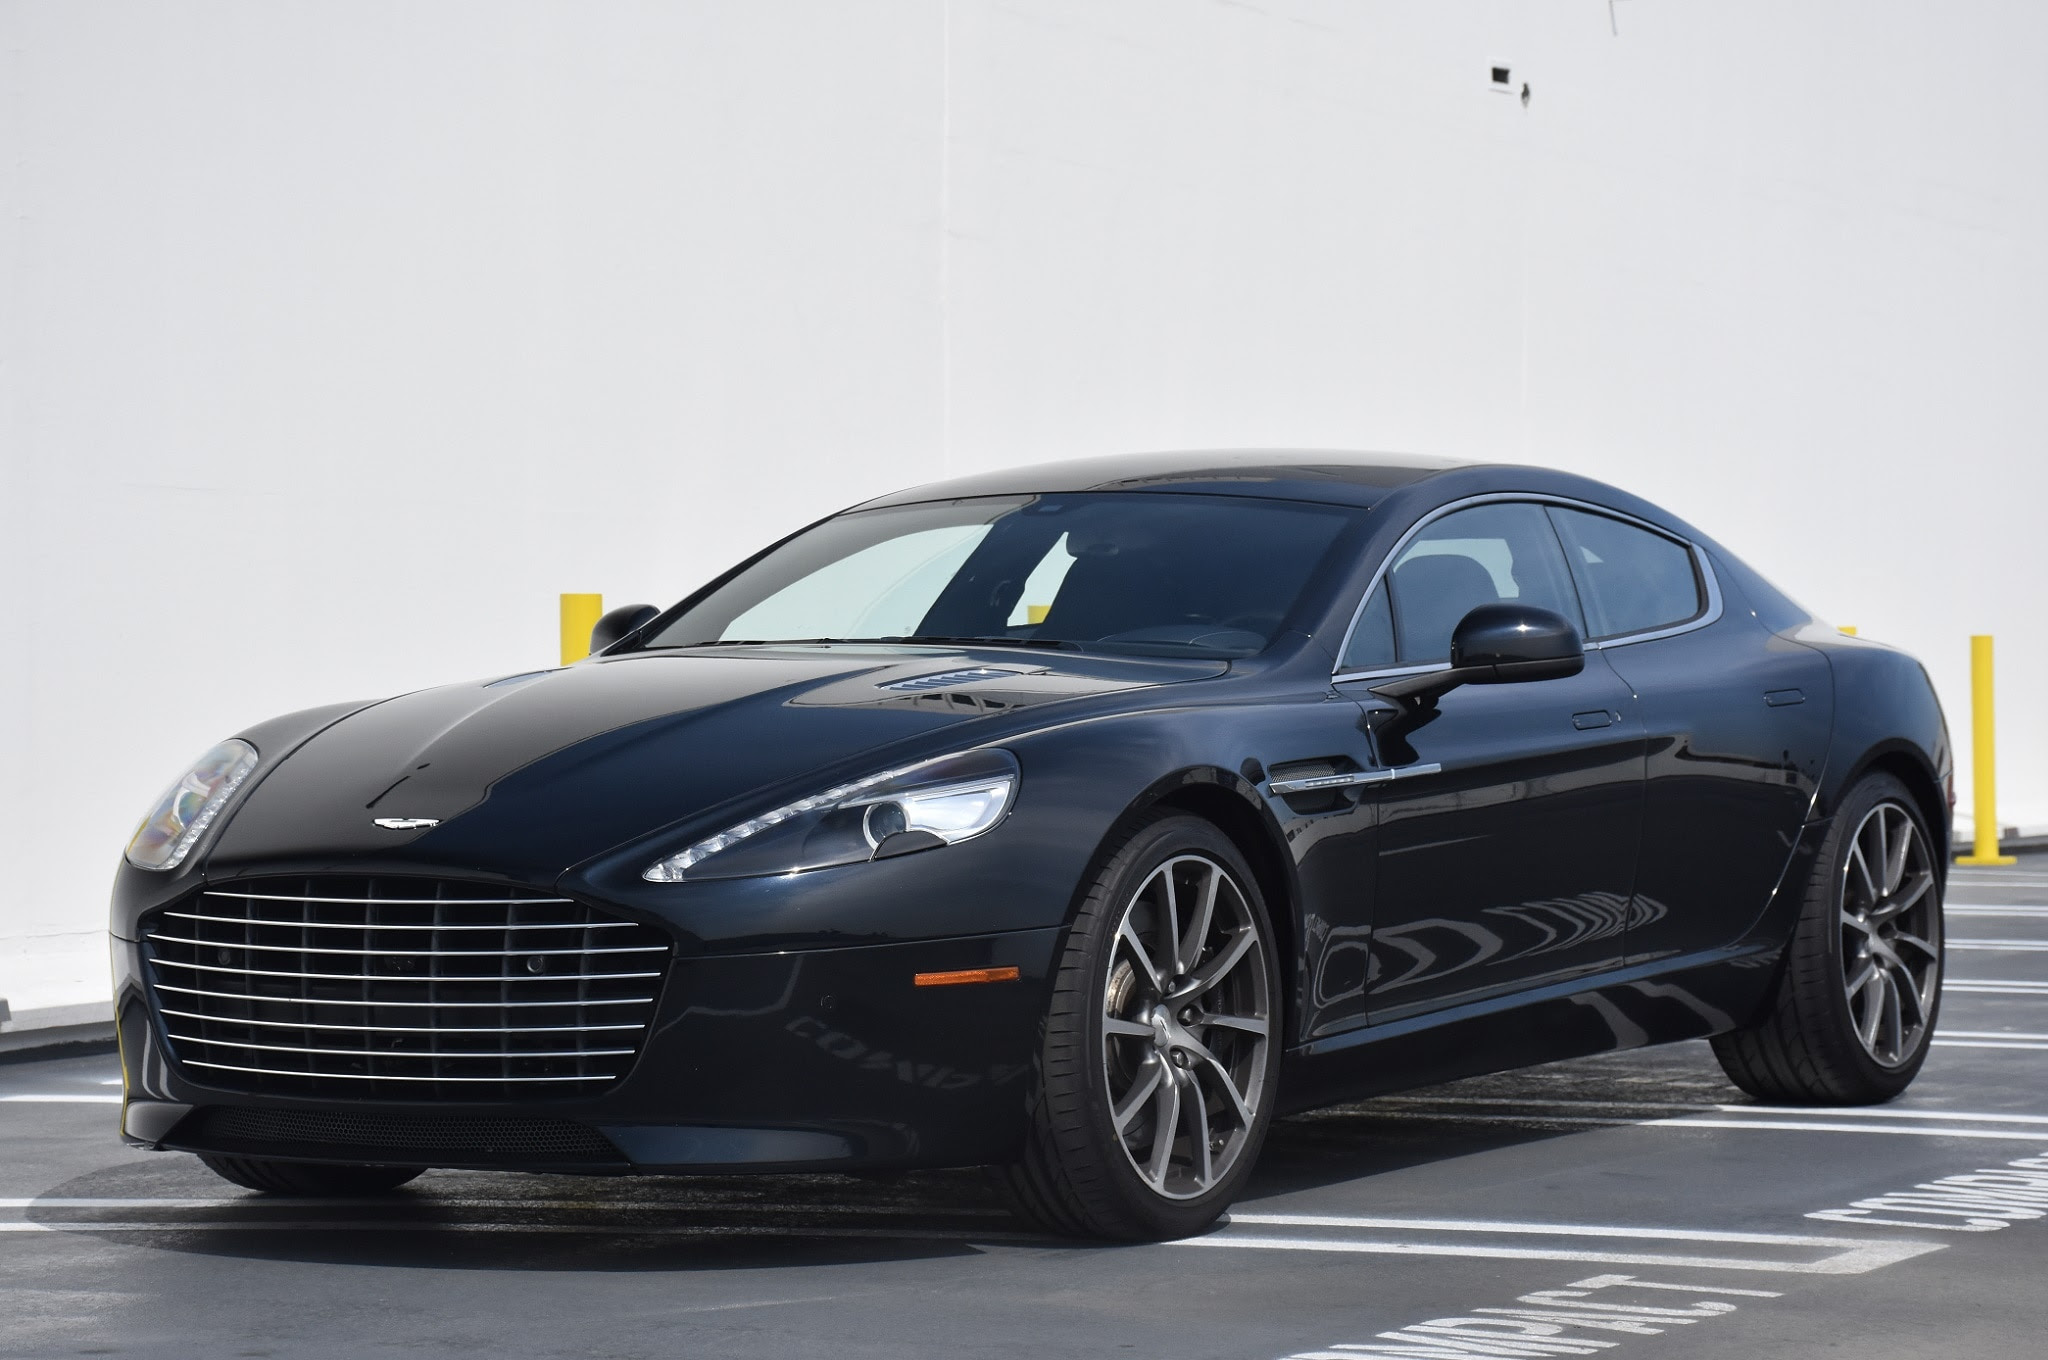 2016 Aston Martin Rapide Price | 2017 - 2018 Best Cars Reviews